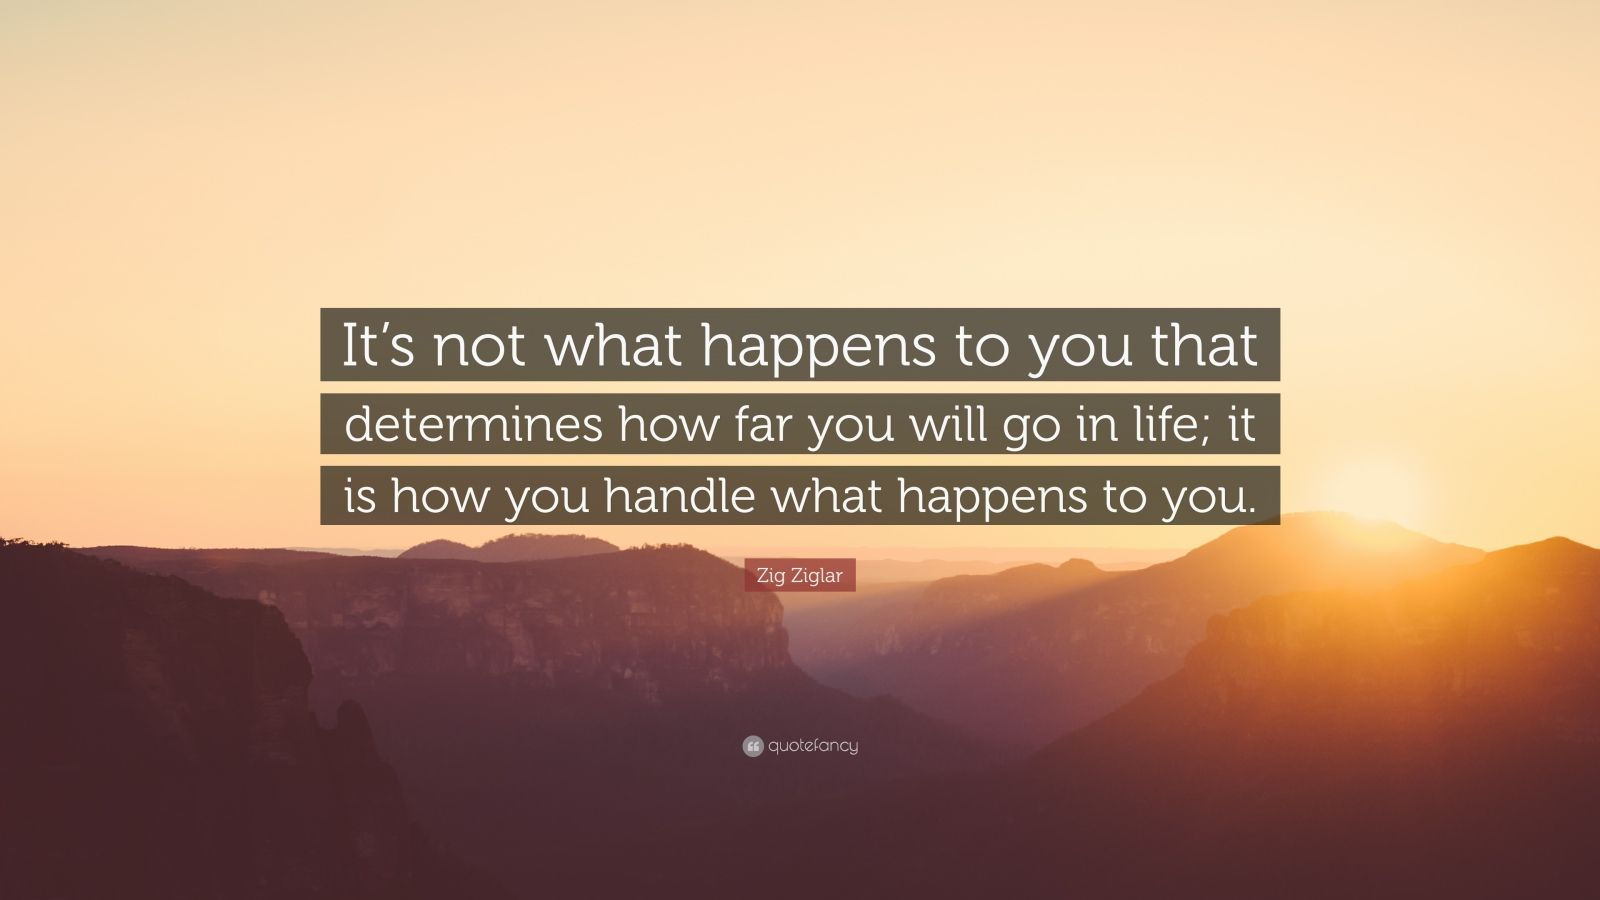 """Zig Ziglar Quote: """"It's not what happens to you that determines how far you will go in life; it is how you handle what happens to you."""""""